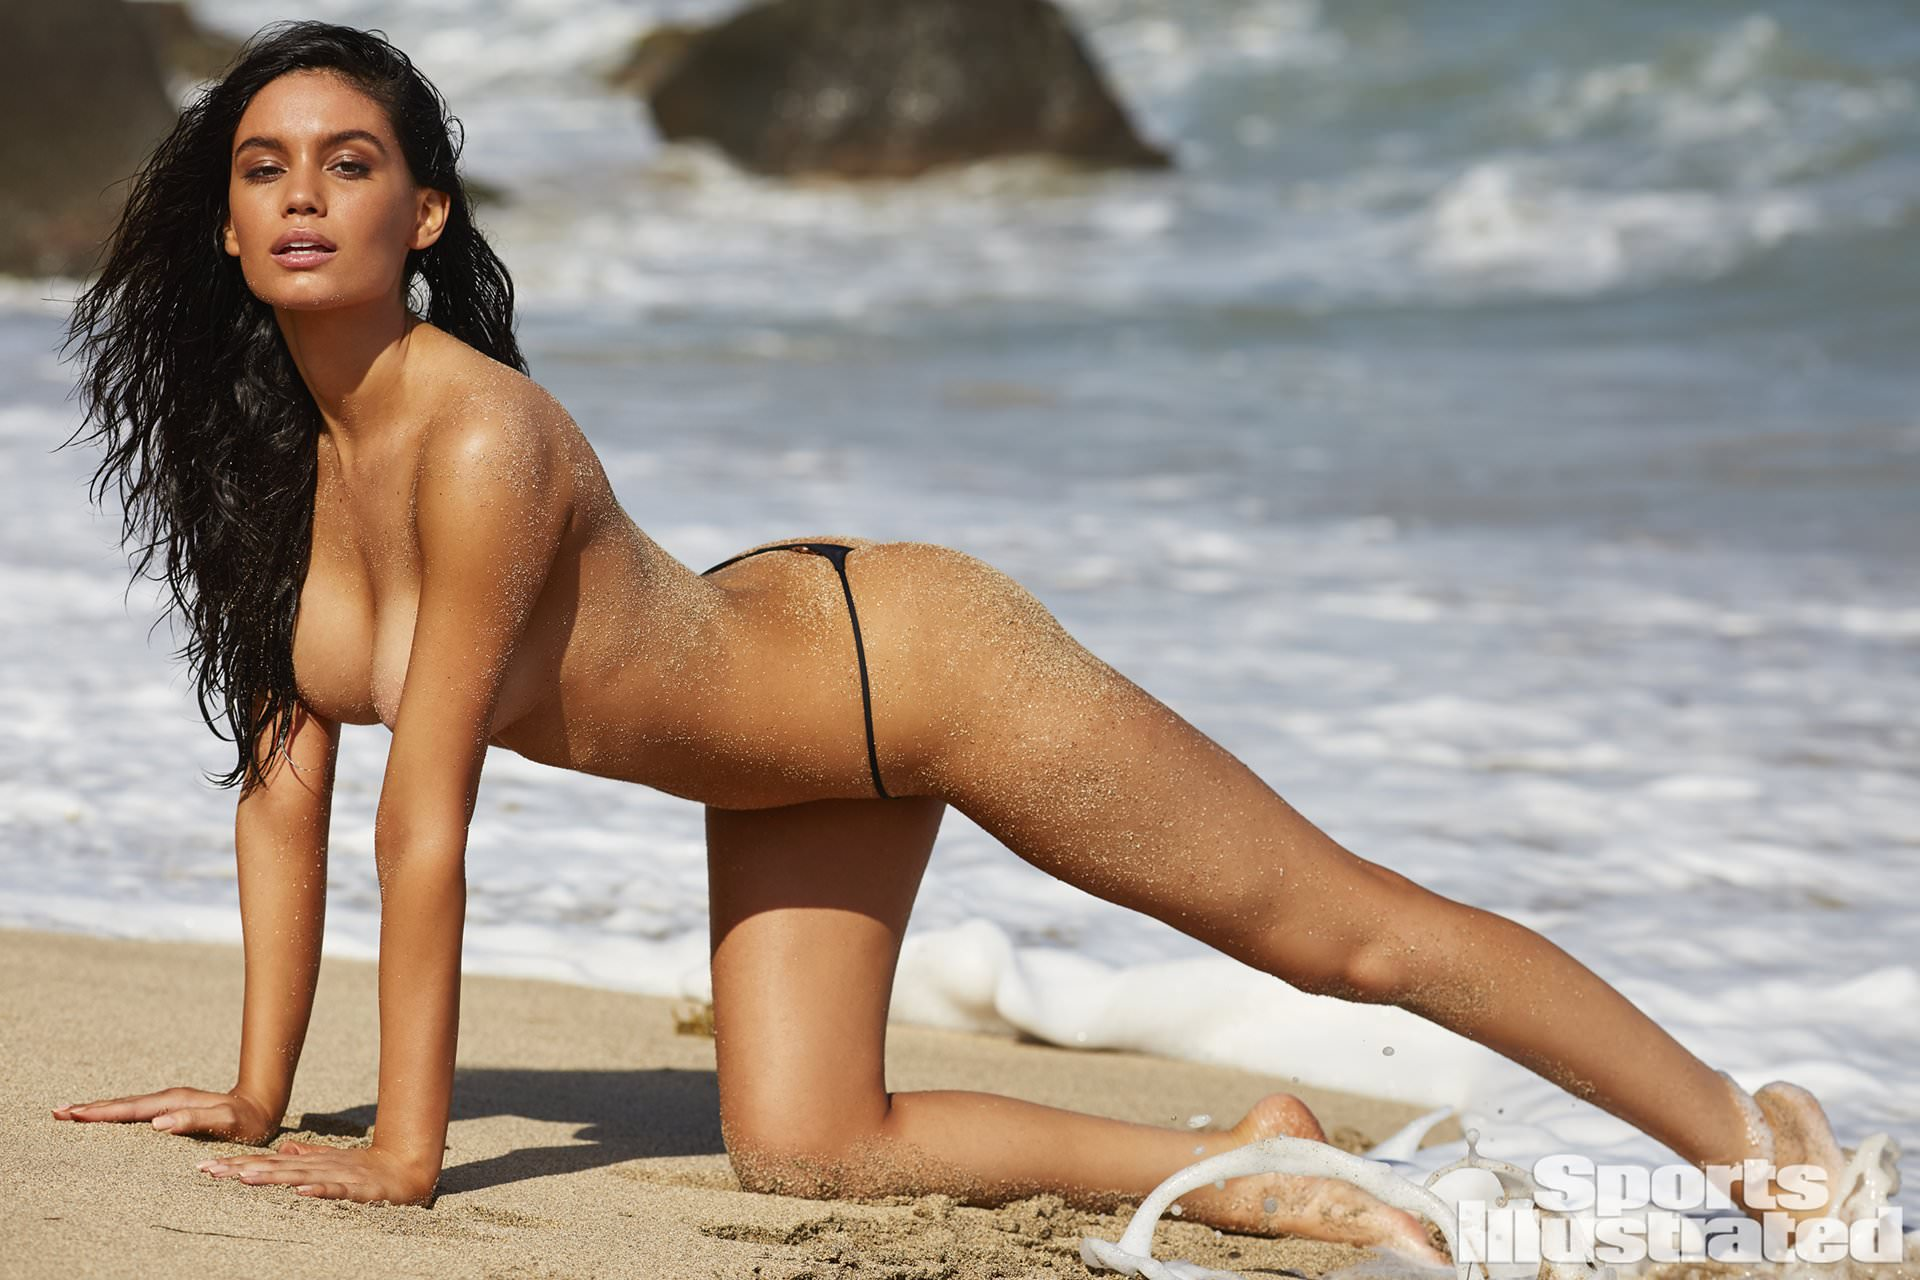 Ana Paula Naked anne de paula nude - 18 pictures: rating 8.82/10